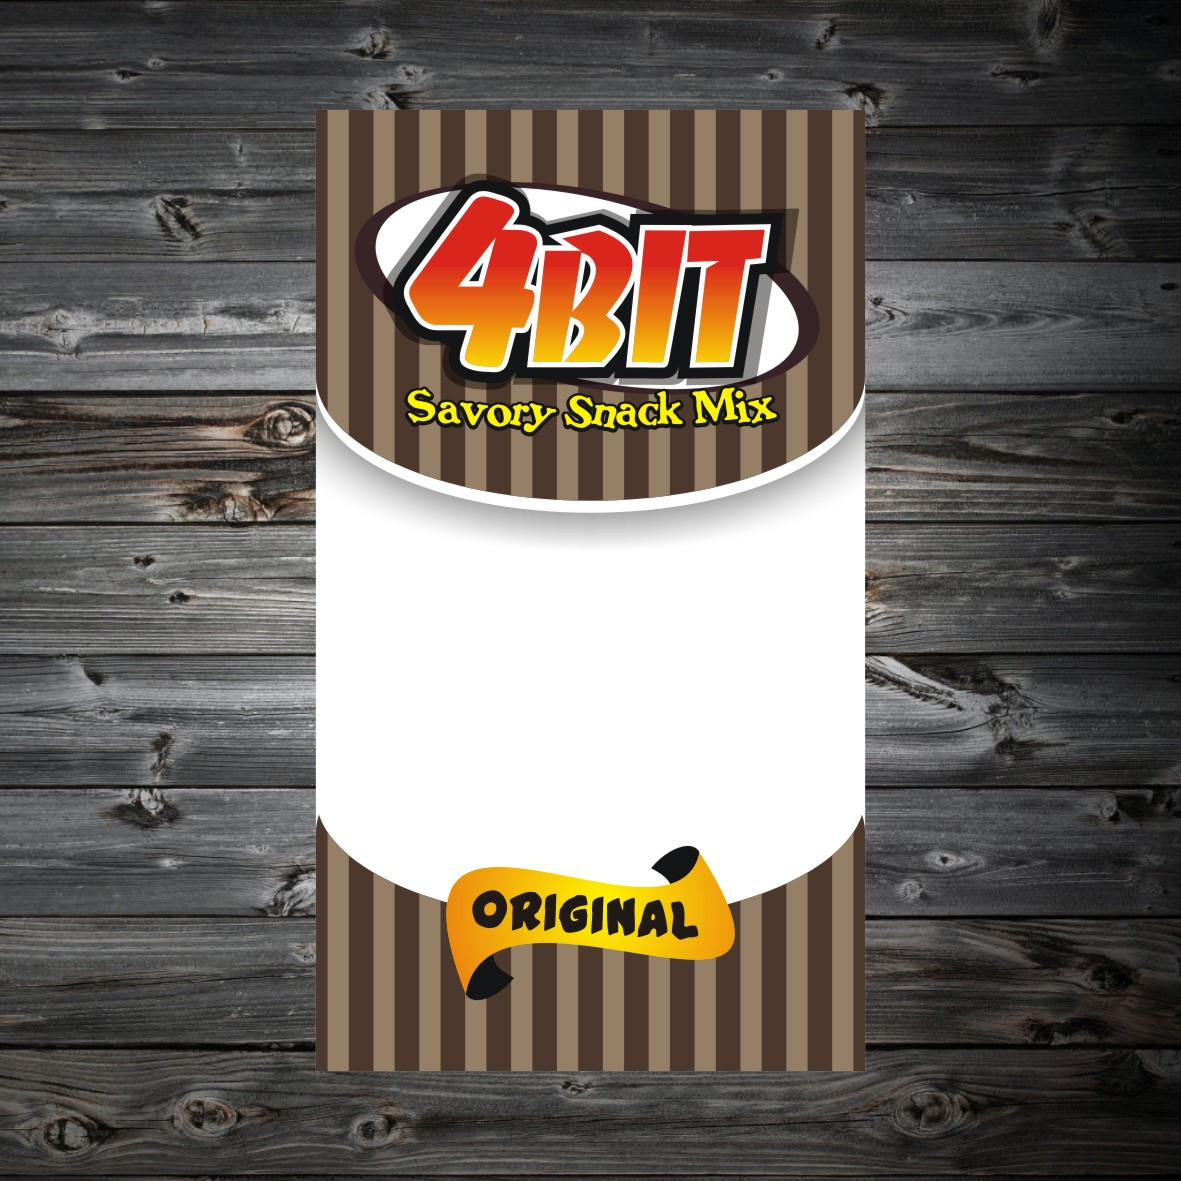 Print Design by arteo_design - Entry No. 68 in the Print Design Contest Fun Print Design (LABEL) 4 BIT SAVORY SNACK MIX - ORIGINAL.